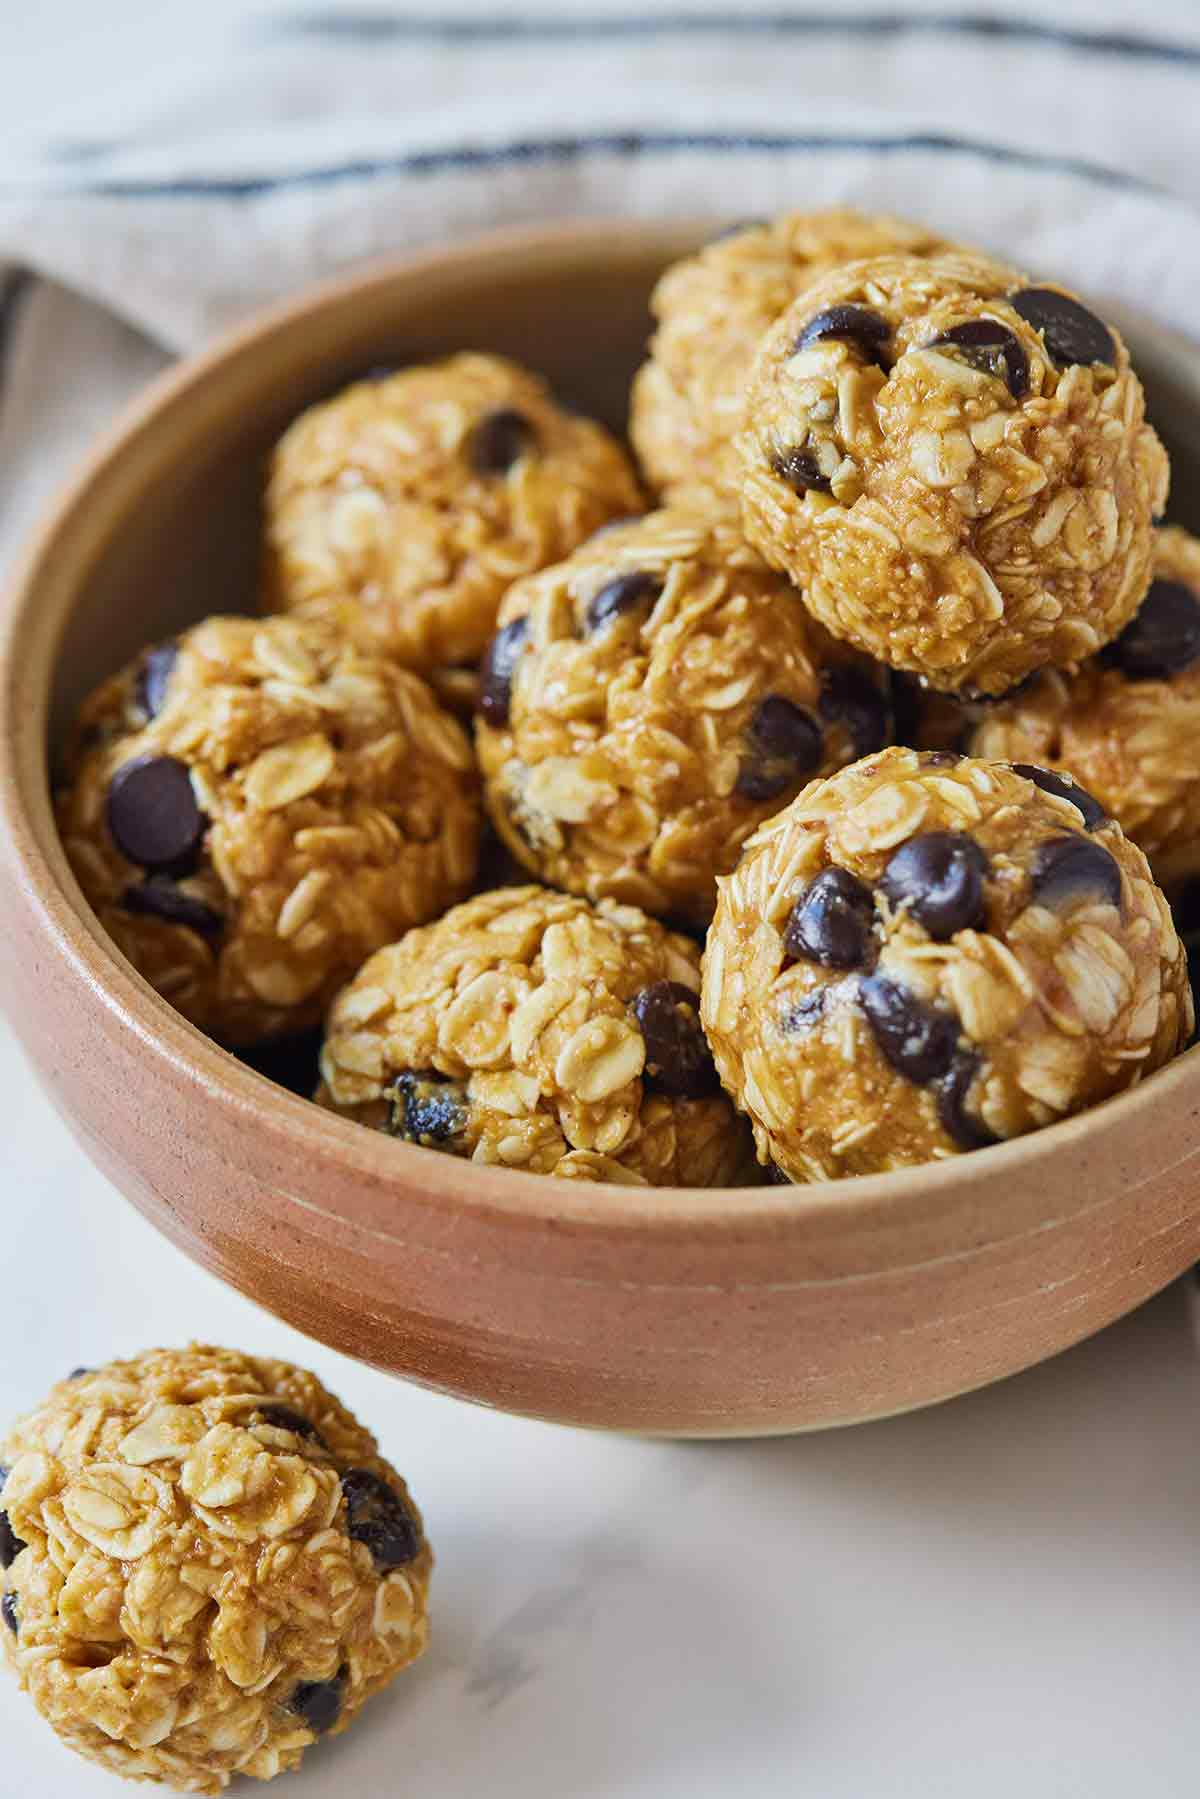 A bowl of multiple energy balls with a single one out on the counter.